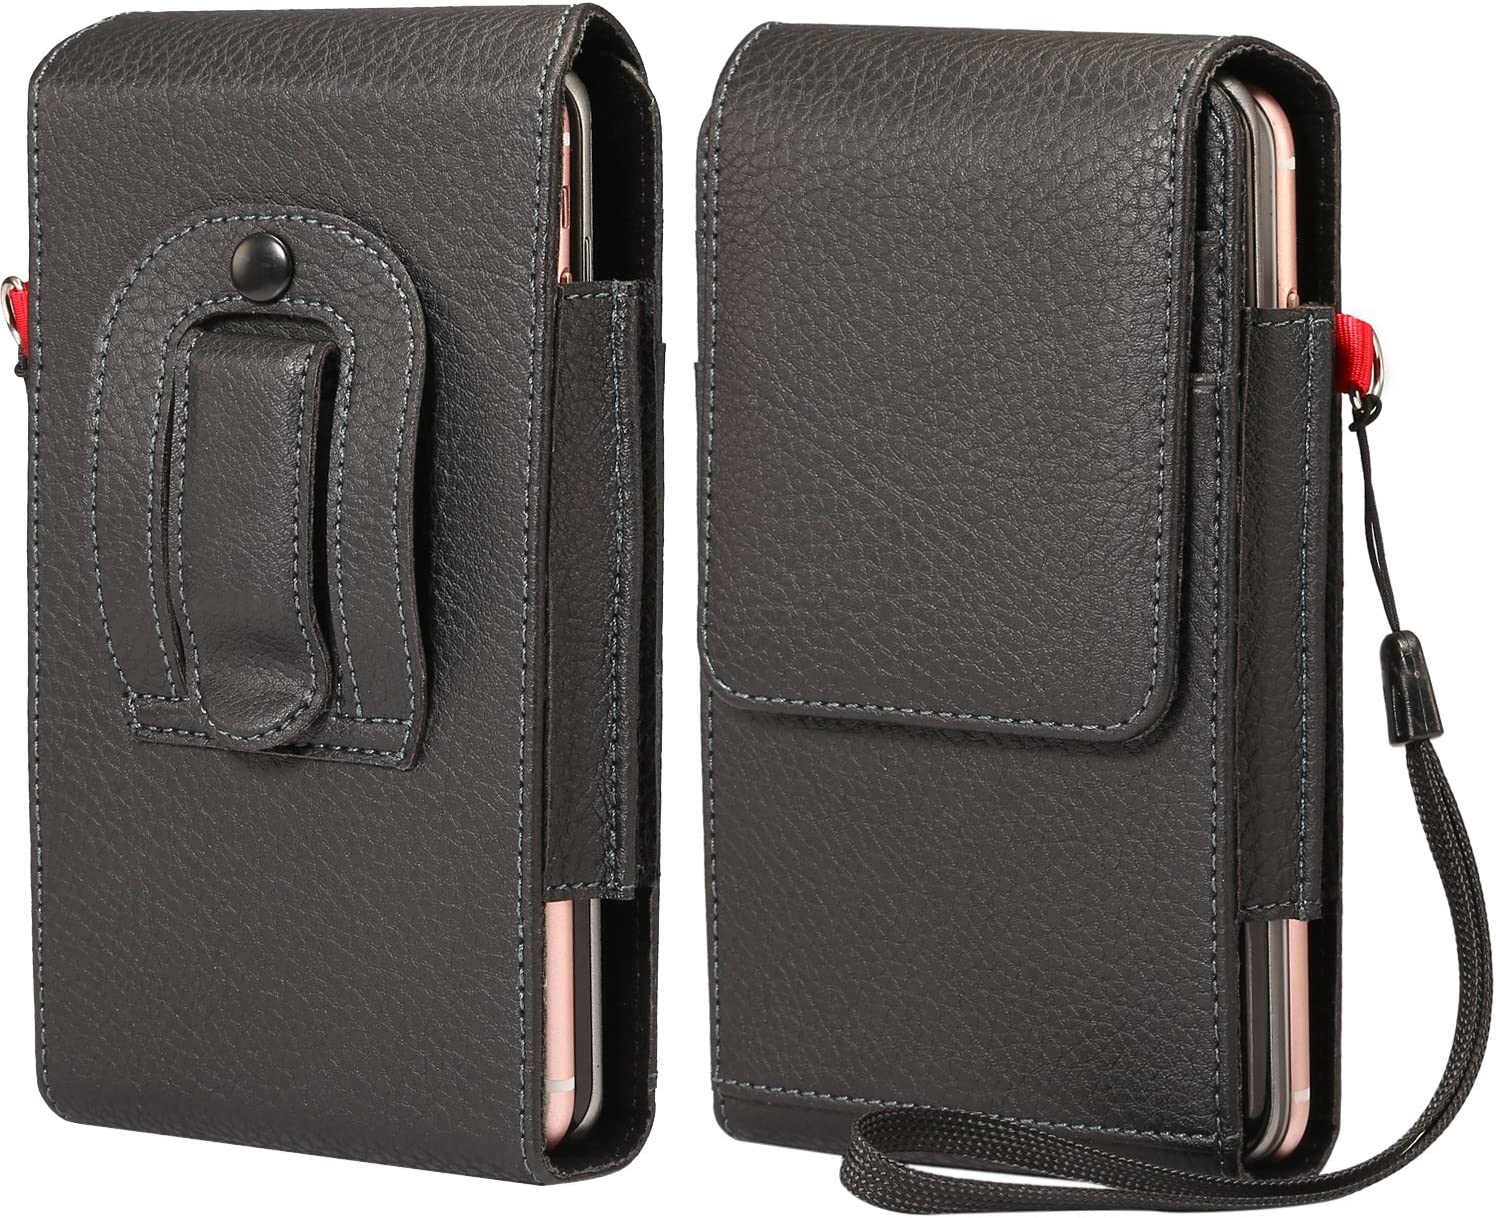 Vertical PU Leather Dual Belt Clip Holster Case Double Decker Phone Pouch w/Card Slots Belt Loop for iPhone 11 Pro Max, Samsung Galaxy Note 10 Plus, Note 9, S10 Plus, Huawei P30 Lite, Google Pixel 3a